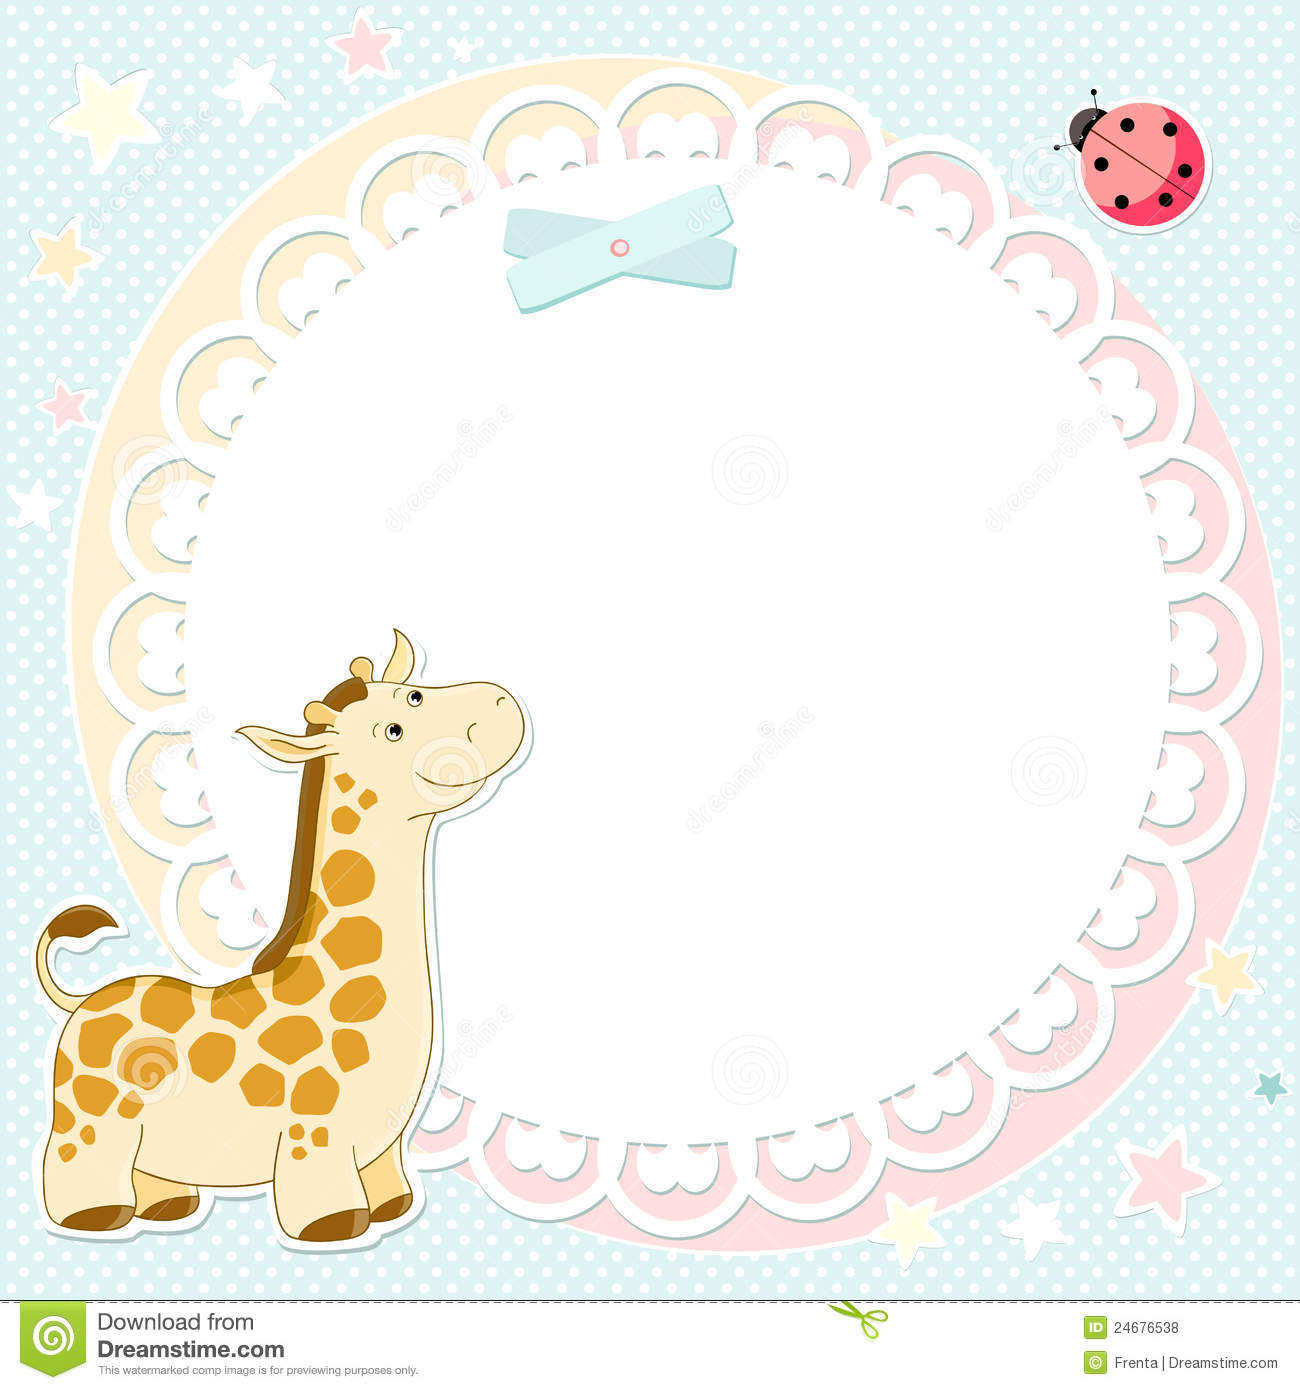 Vector background with cute giraffe stock vector image 24676538 vector background with cute giraffe voltagebd Choice Image